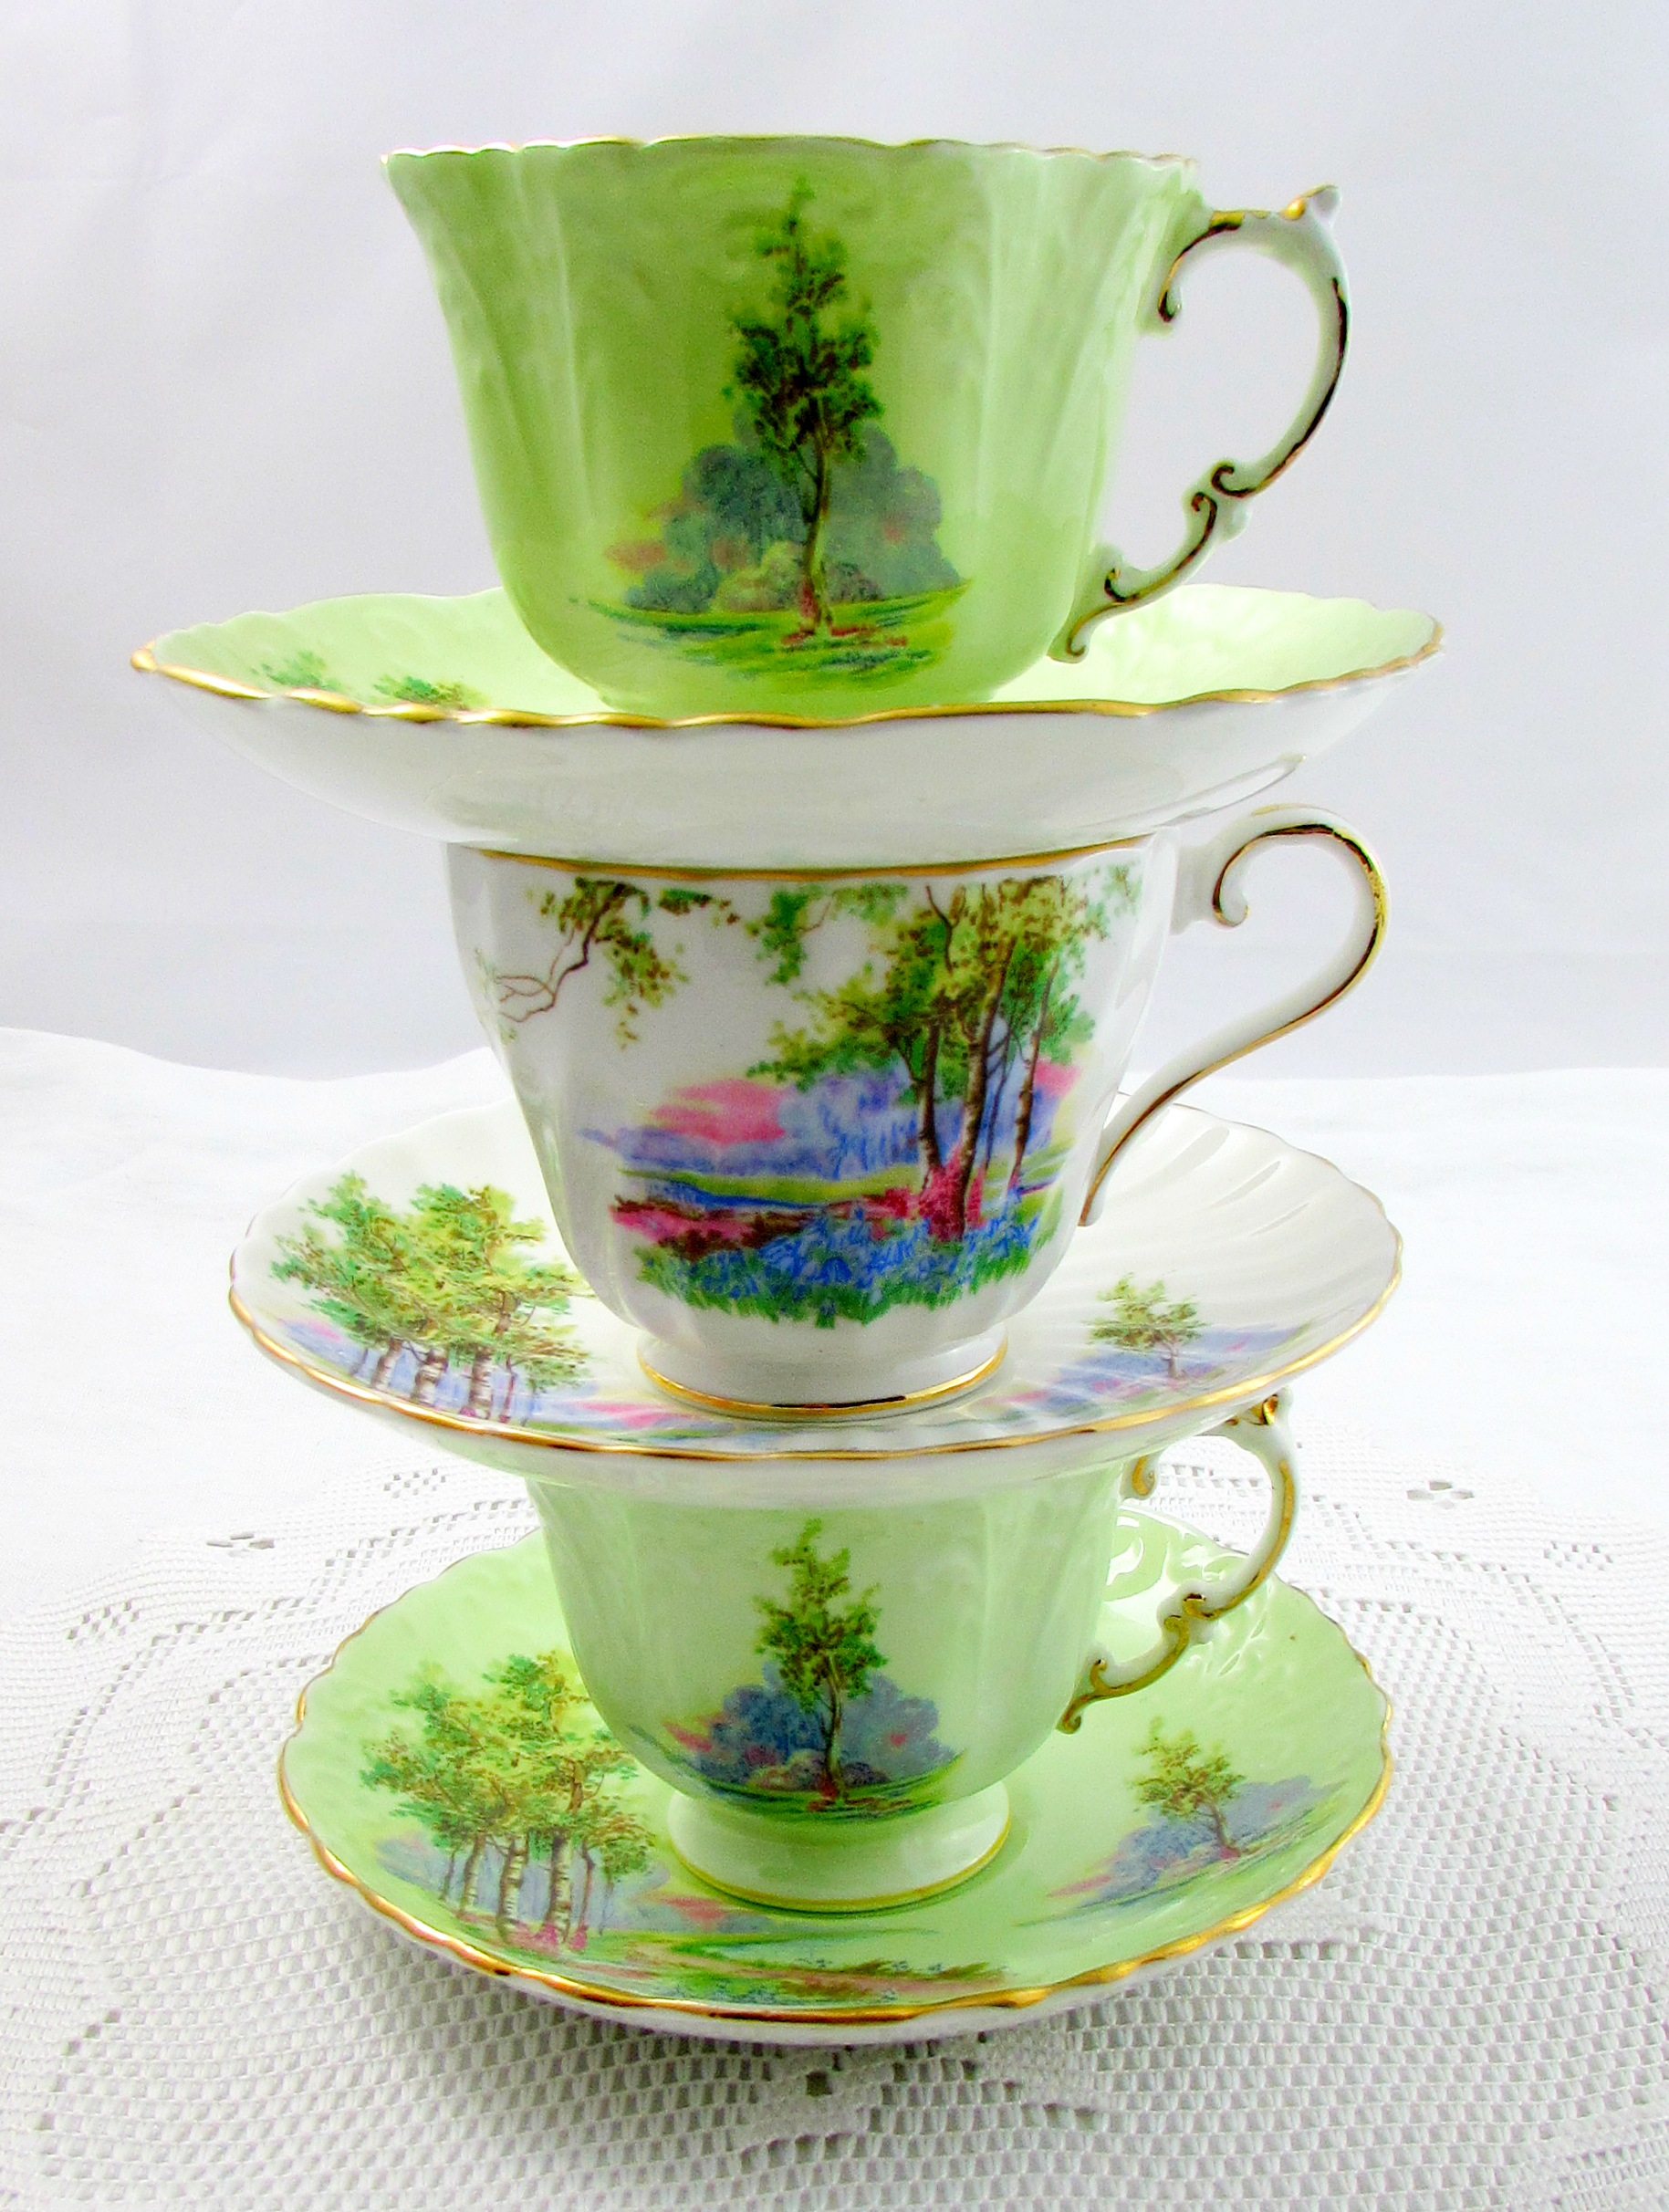 Reserved For Sc Aynsley Green Tea Cup And Saucer Bluebell Etsy Tea Cups Green Tea Cups Tea